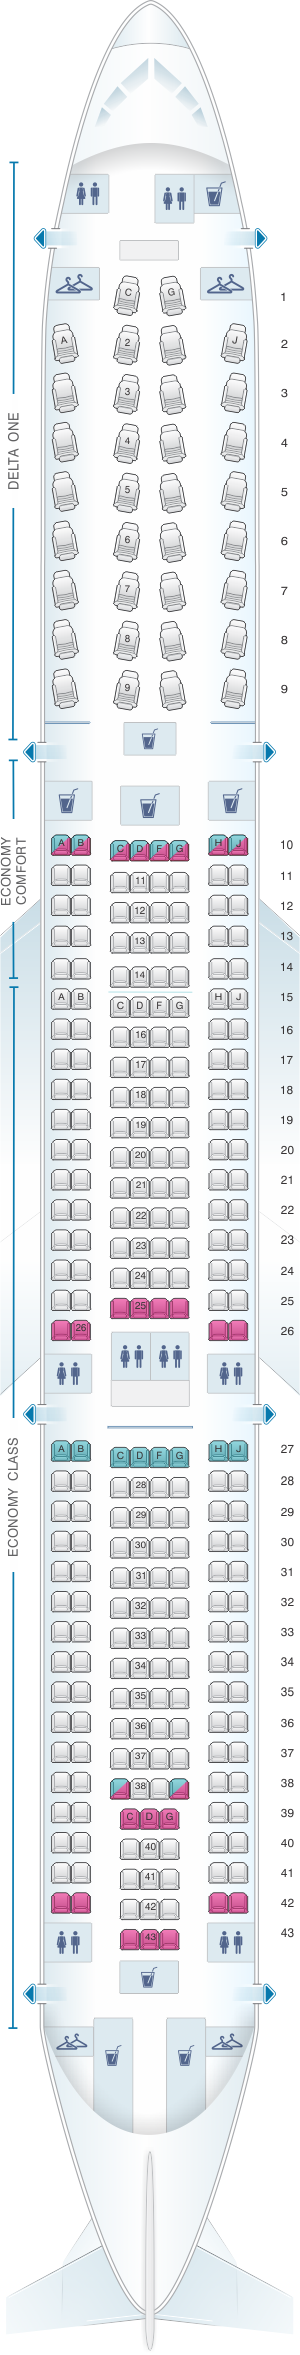 Seat Map For Delta Airlines Airbus A330 300 333